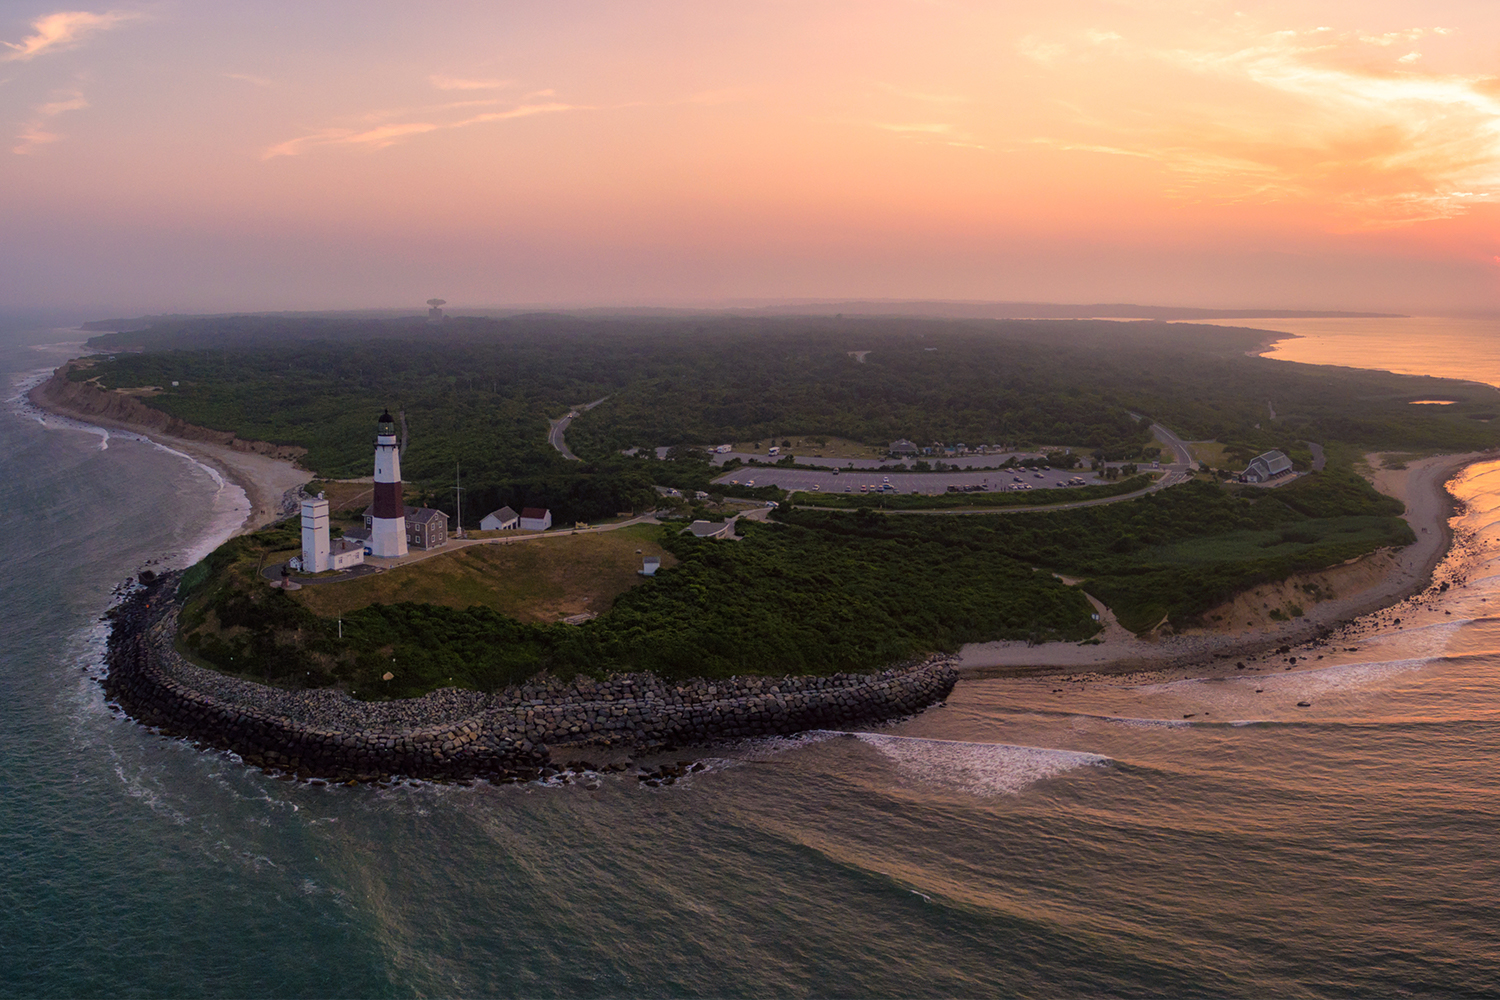 Aerial view of Montauk Point in East Hampton, Long Island, New York